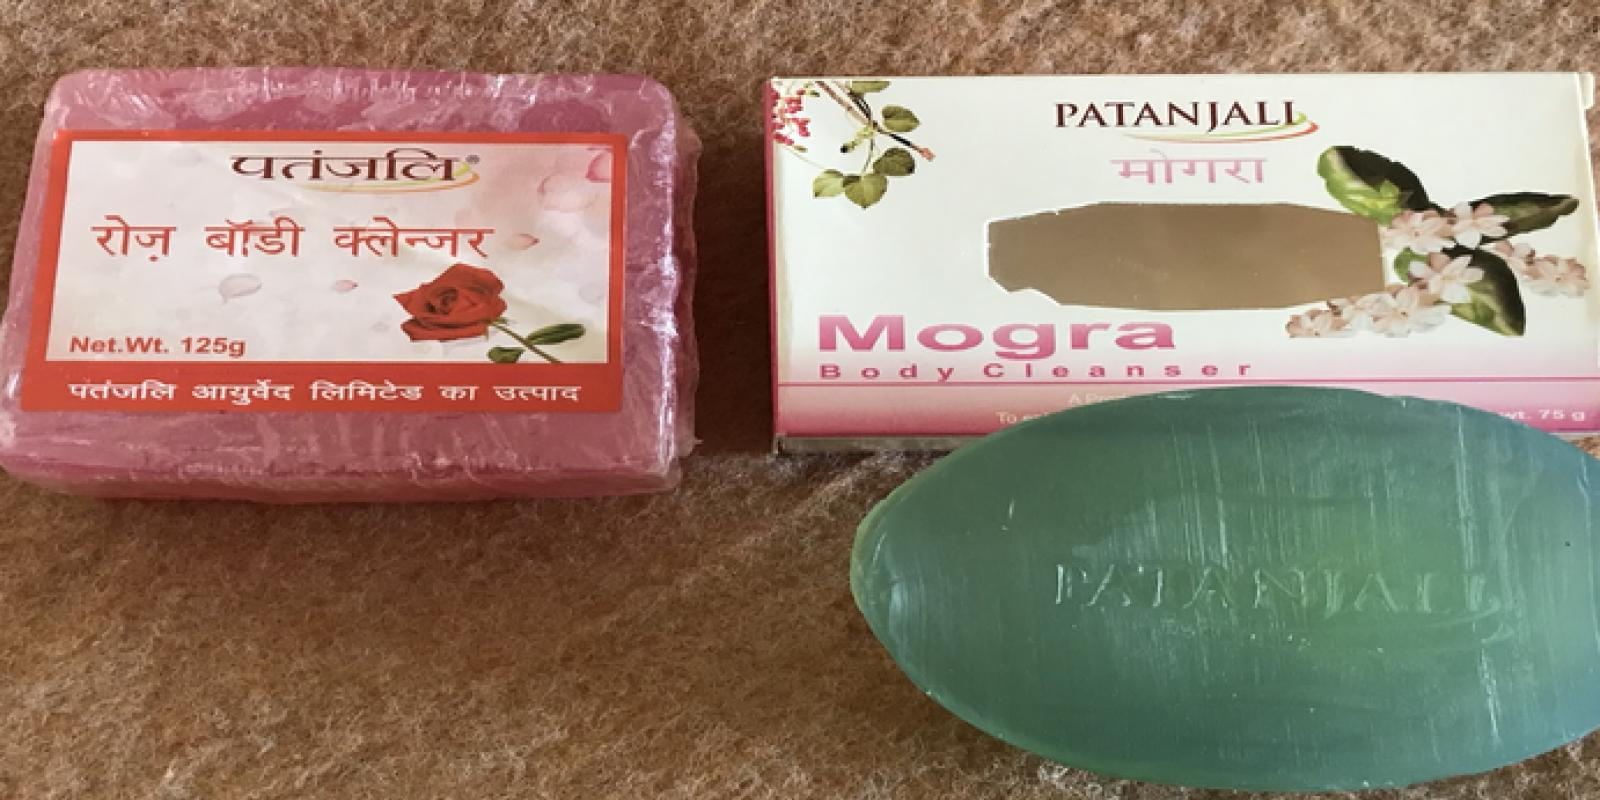 Patanjali Rose Body Cleaner